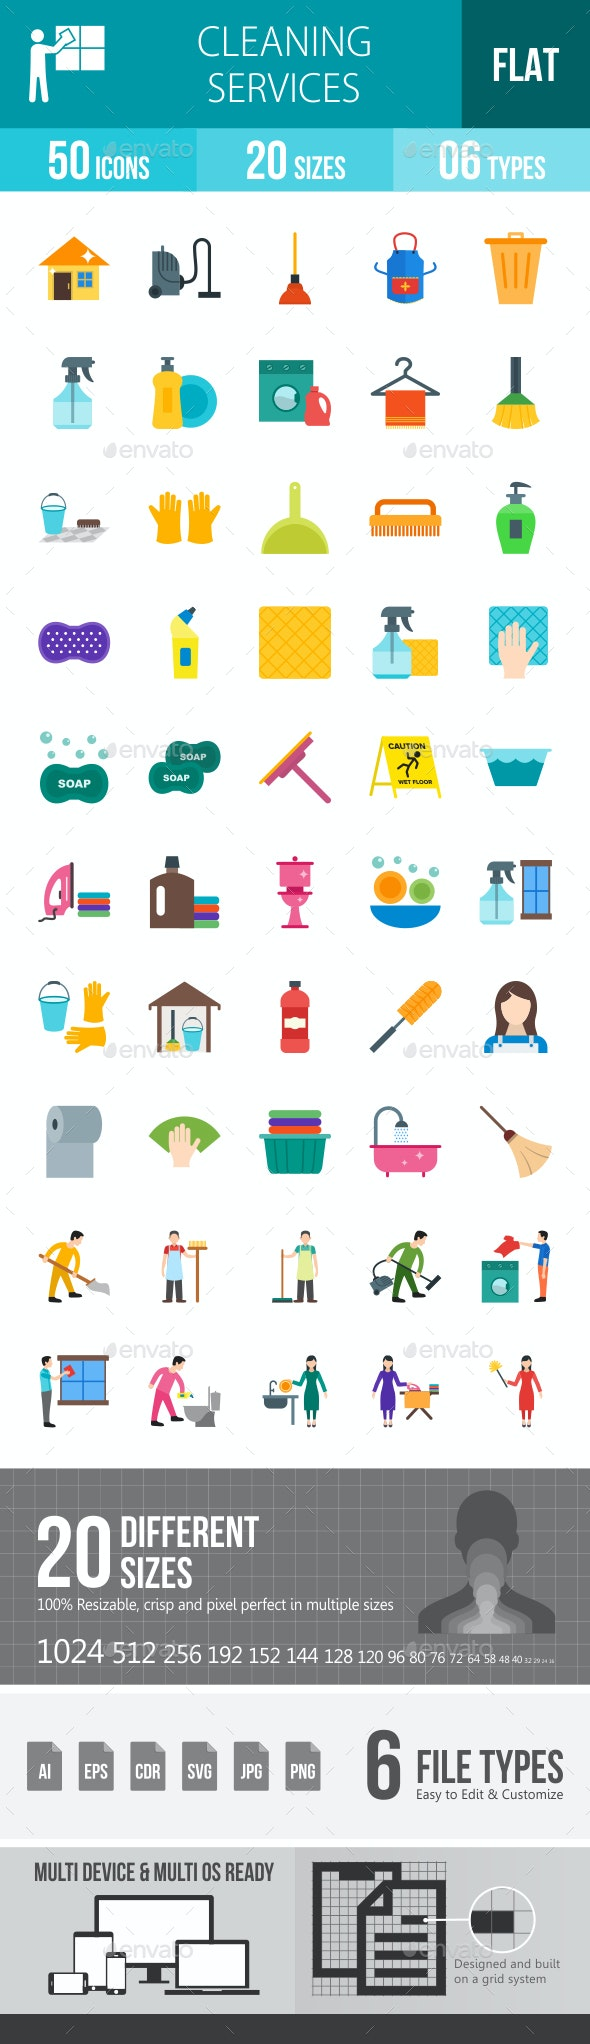 Cleaning Services Flat Multicolor Icons - Icons